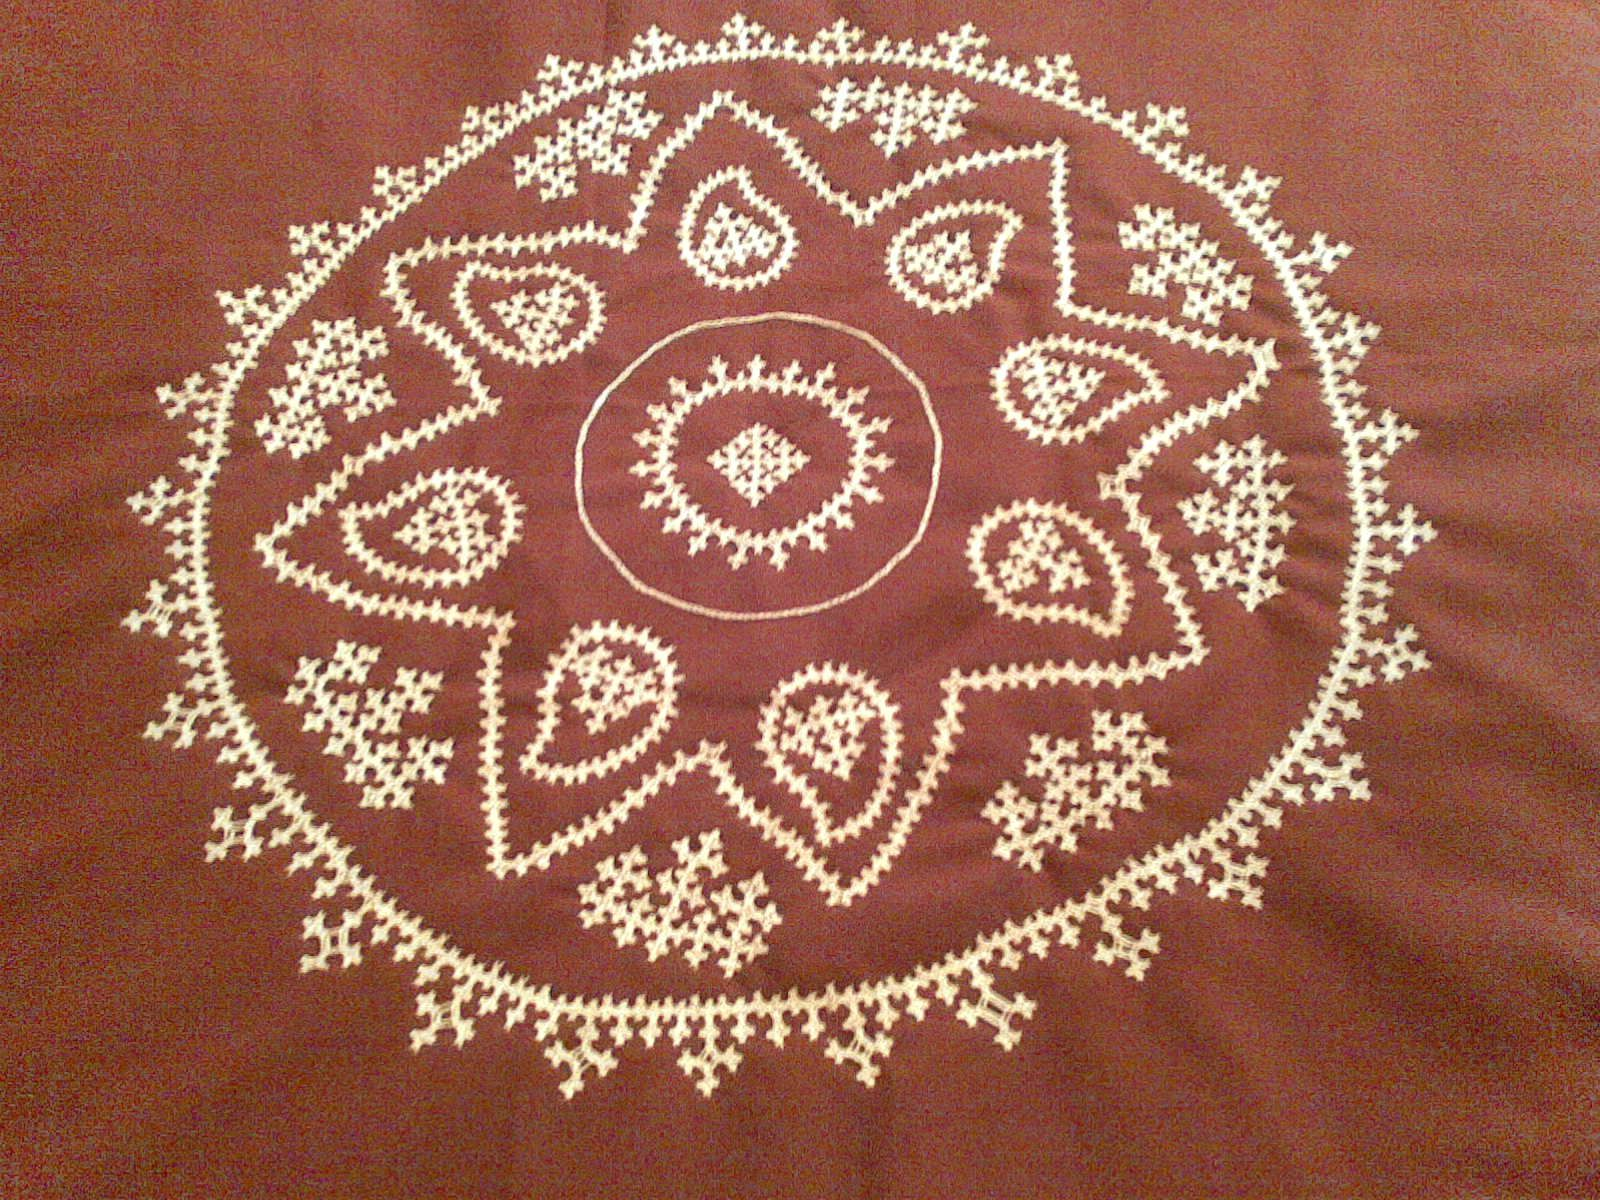 Bed sheet designs hand embroidery - Srilu Arts Kutch Work Hand Embroidary On Bedsheet